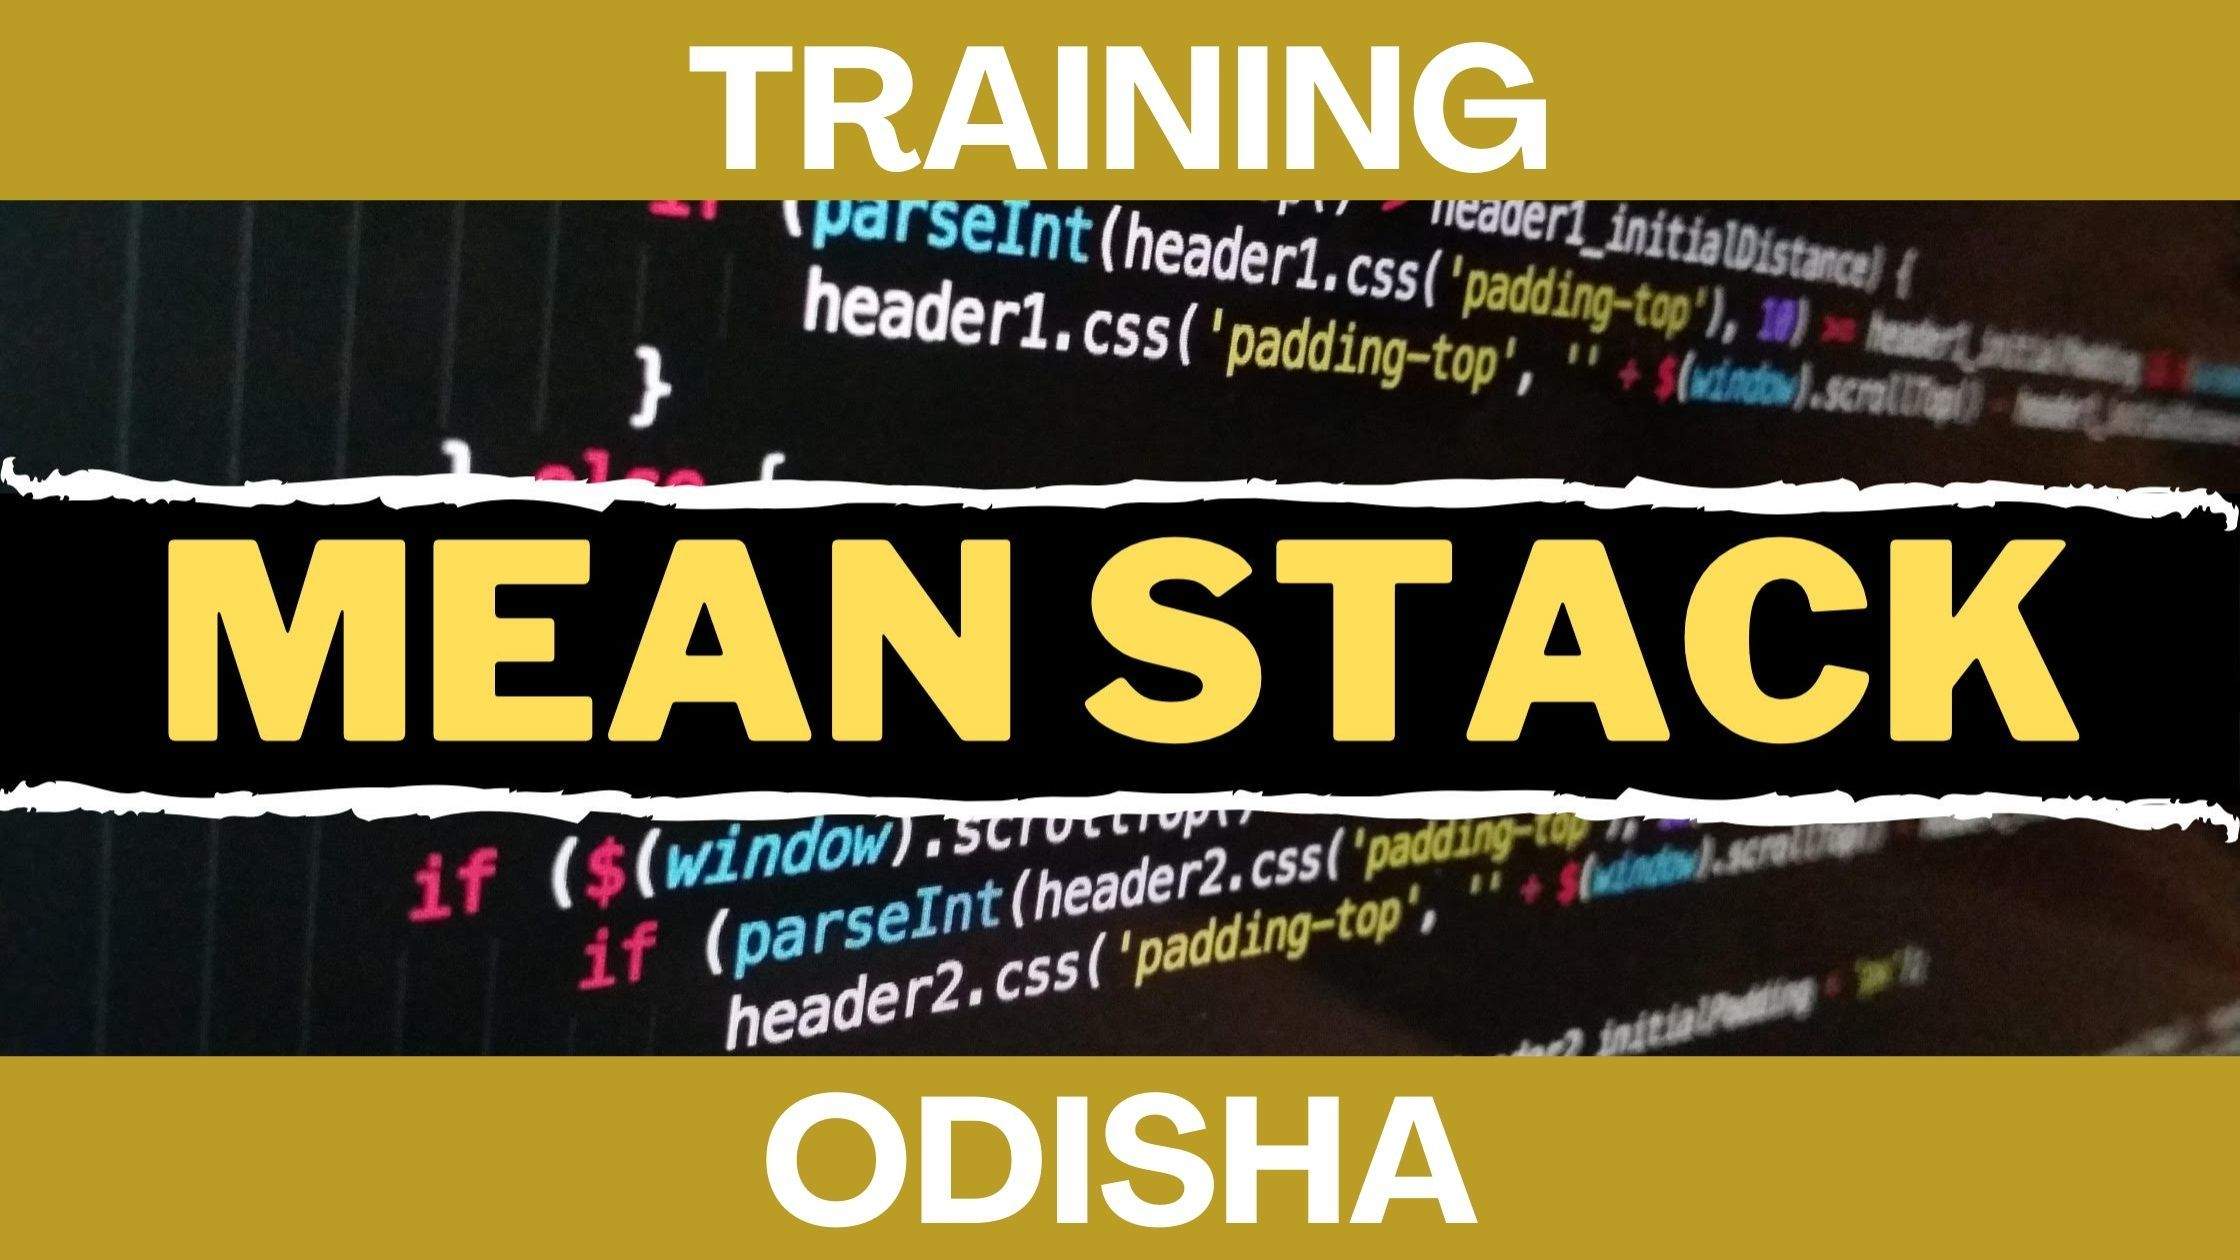 mean_stack_training_in_odisha-background.jpeg